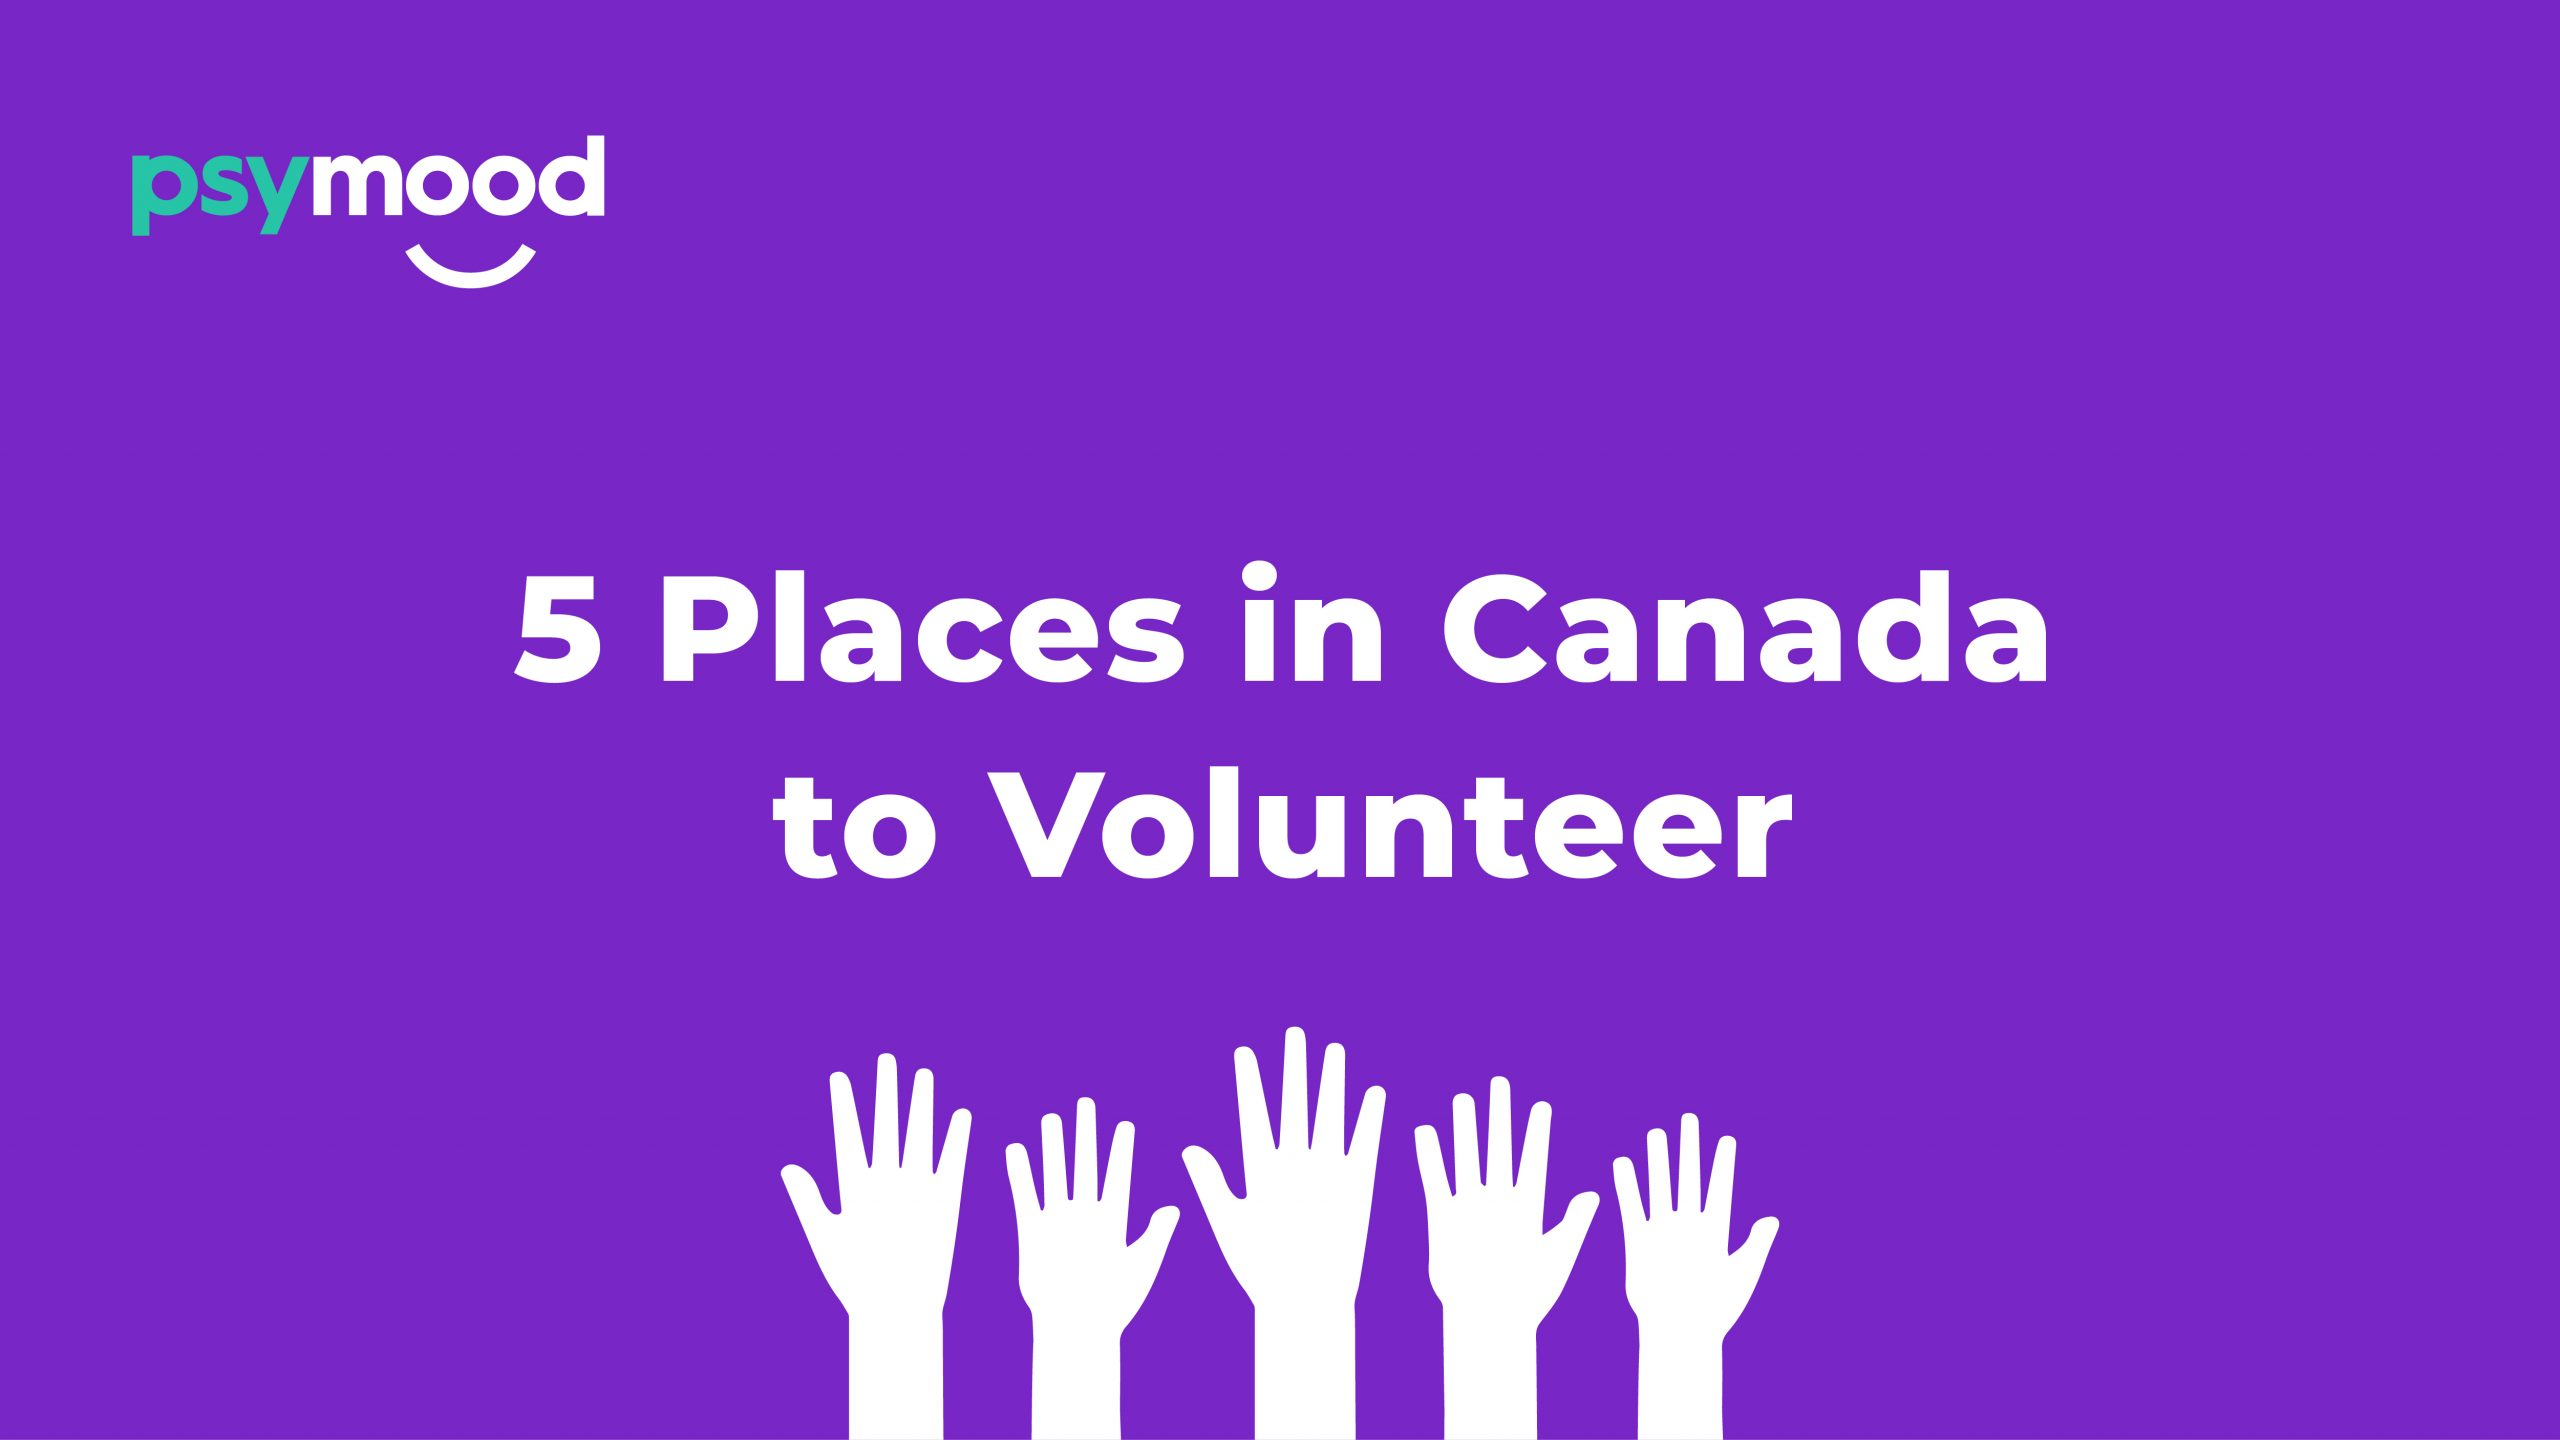 5 Places in Canada to Volunteer